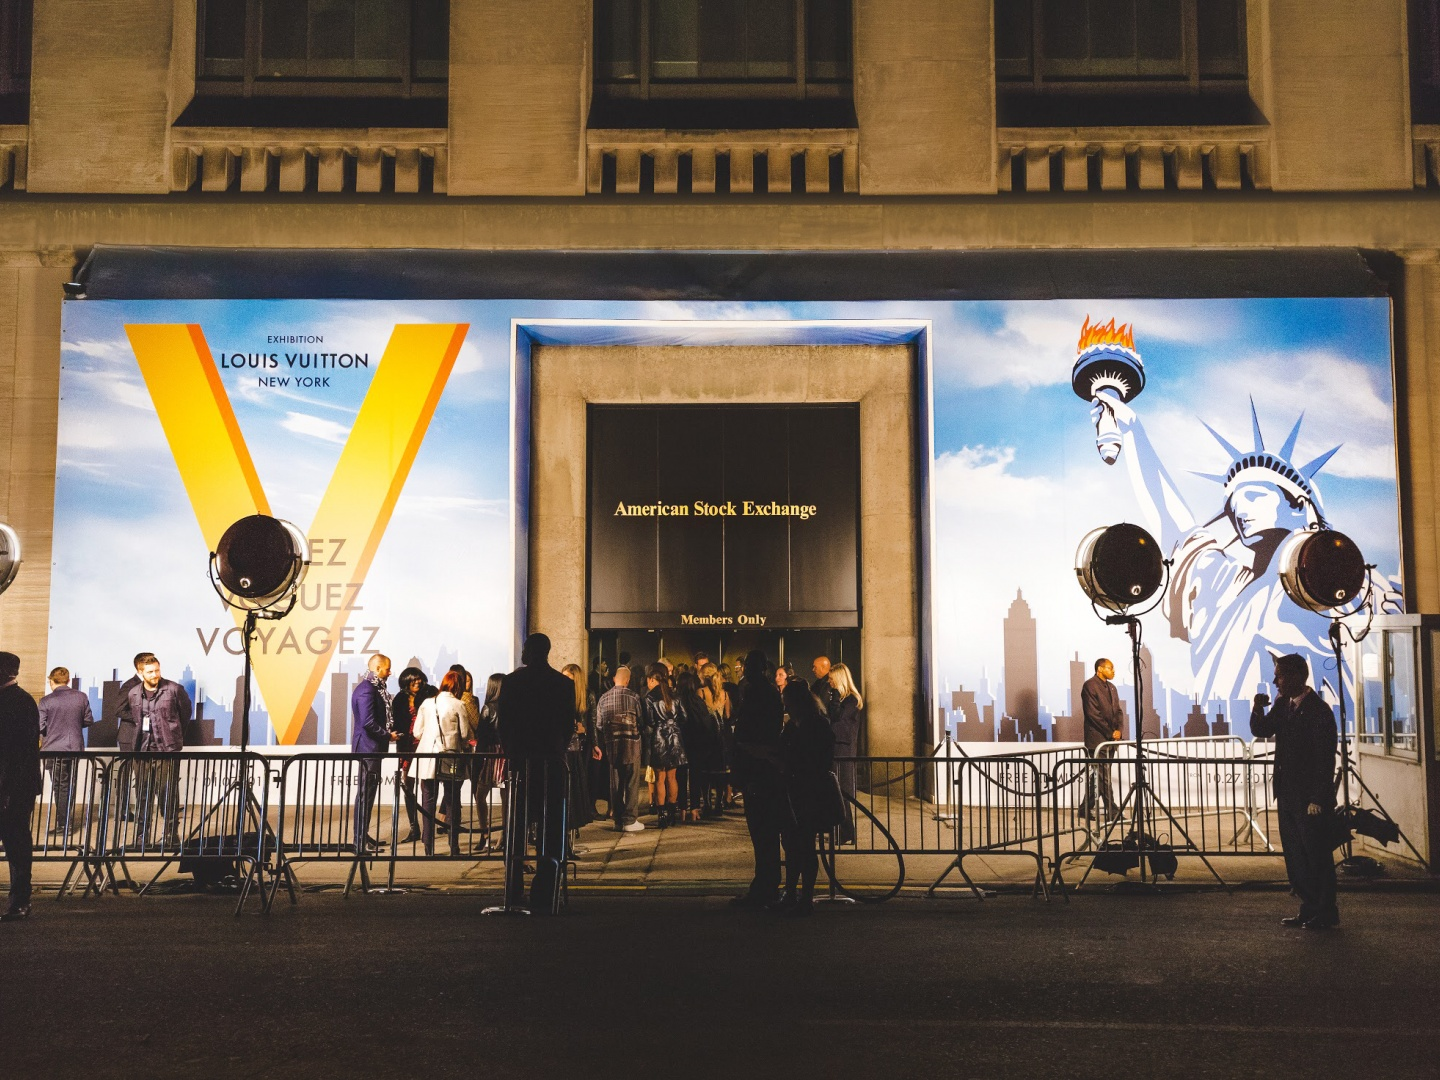 Louis Vuitton Volez, Voguez, Voyagez Exhibition New York Thumbnail